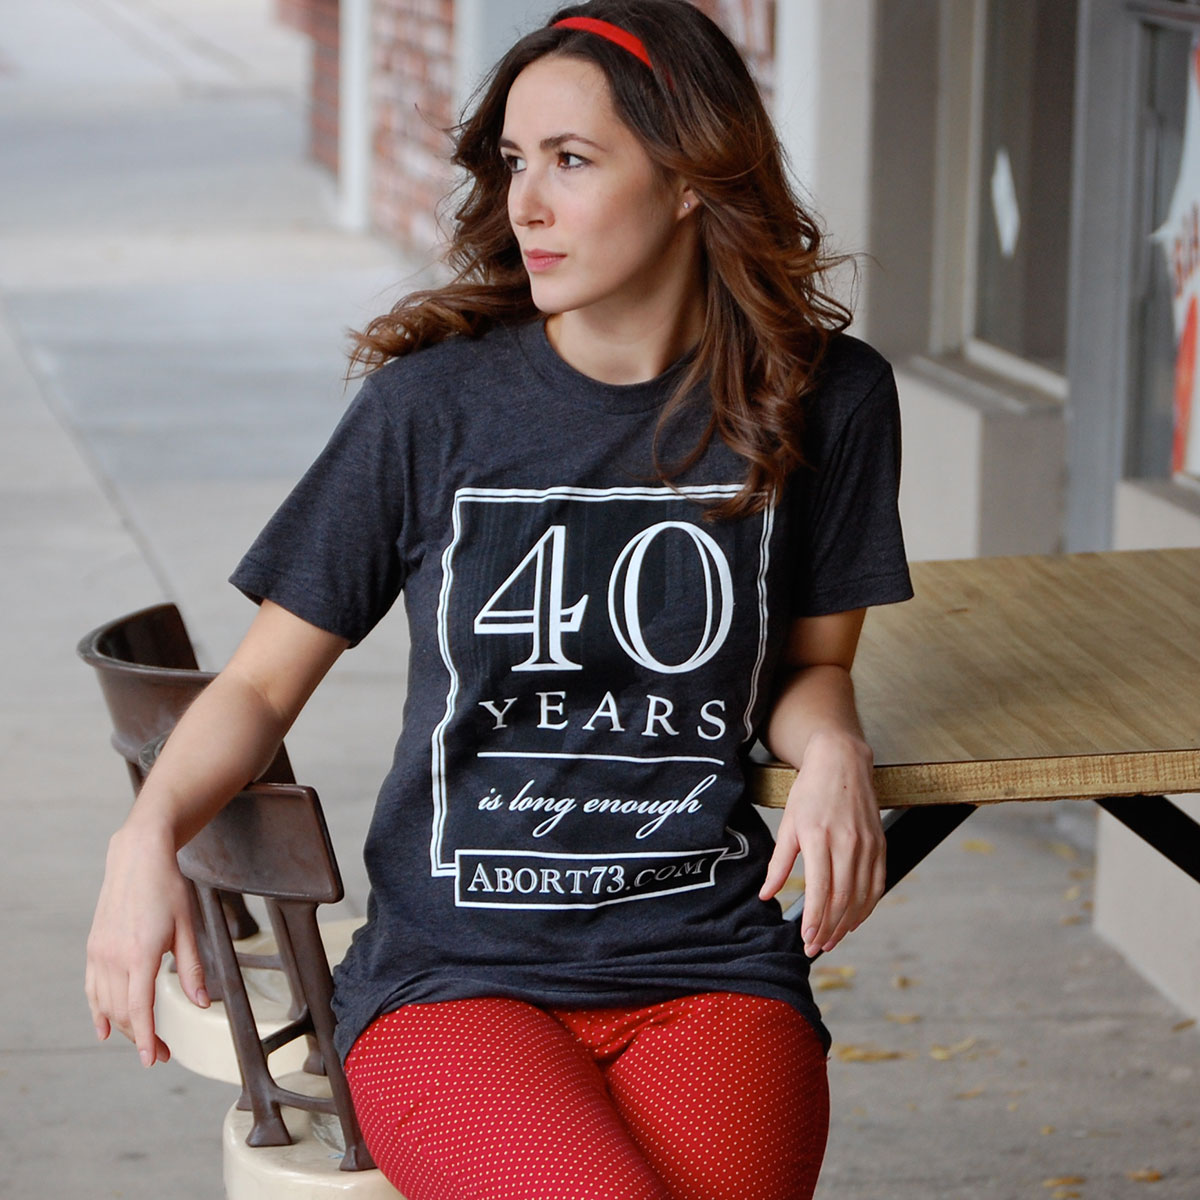 40 Years is Long Enough (Abort73 Unisex 50/50 T-shirt)